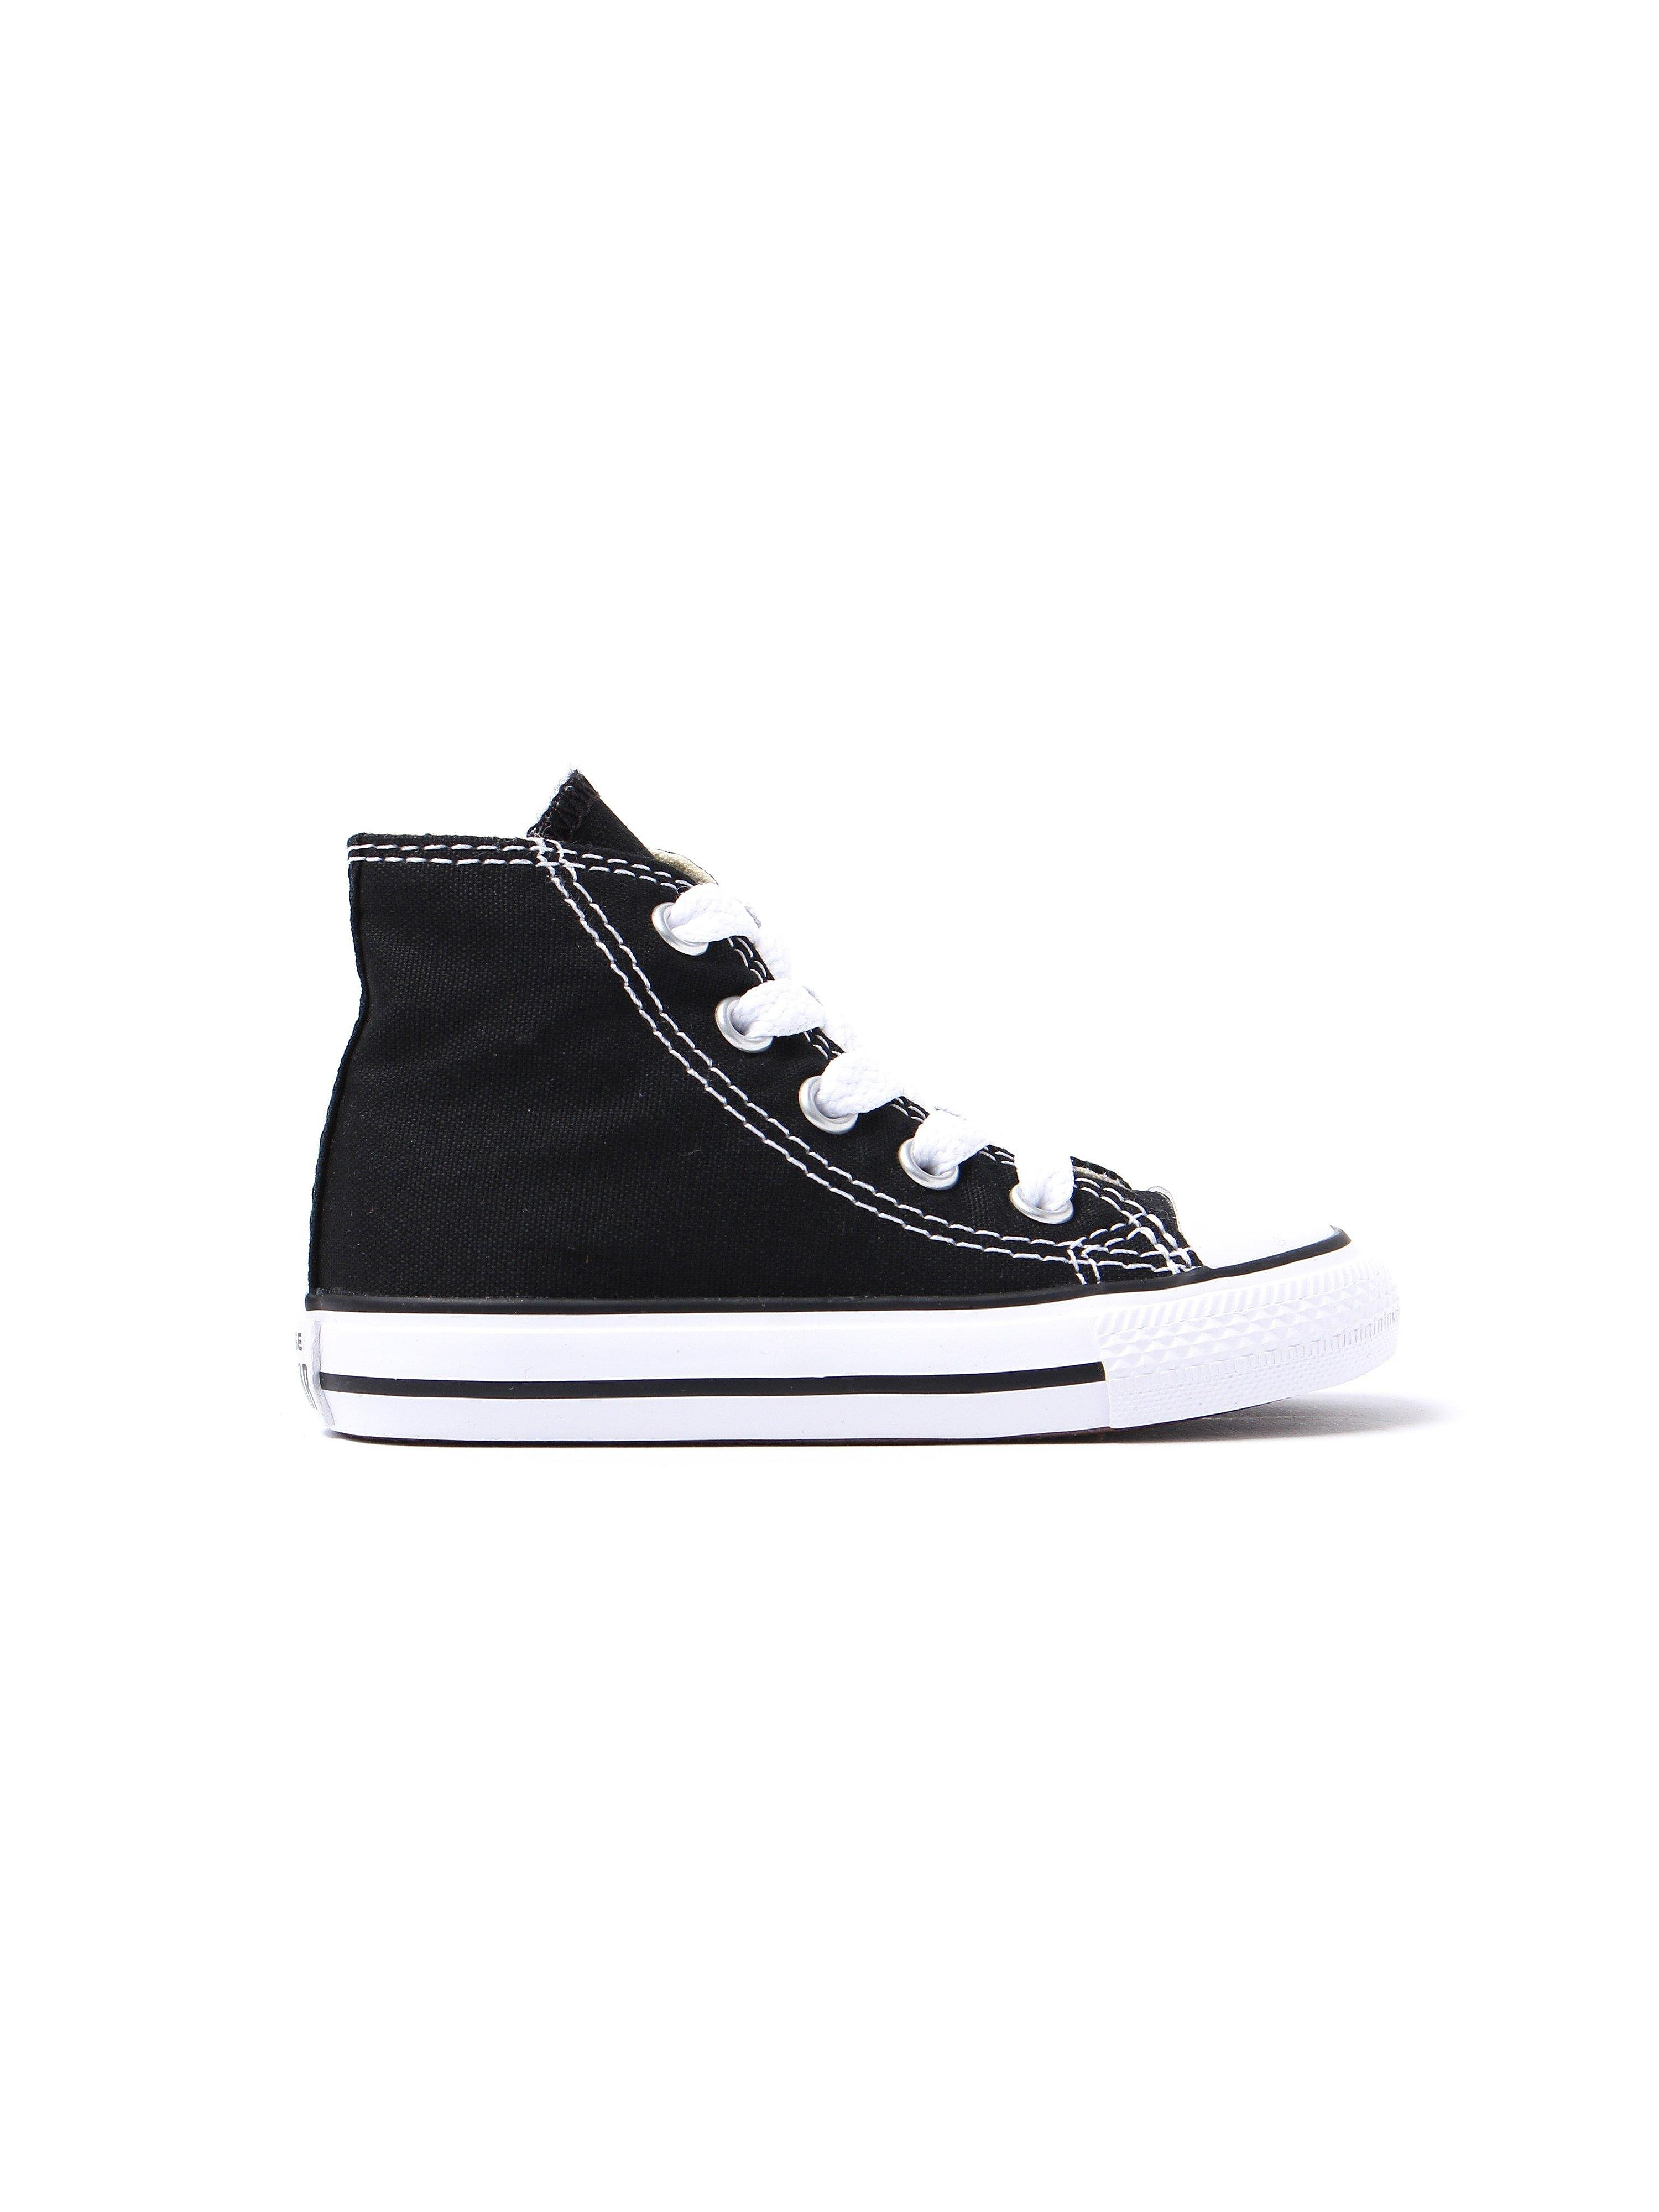 Converse Infant Chuck Taylor All Star High Top - Black